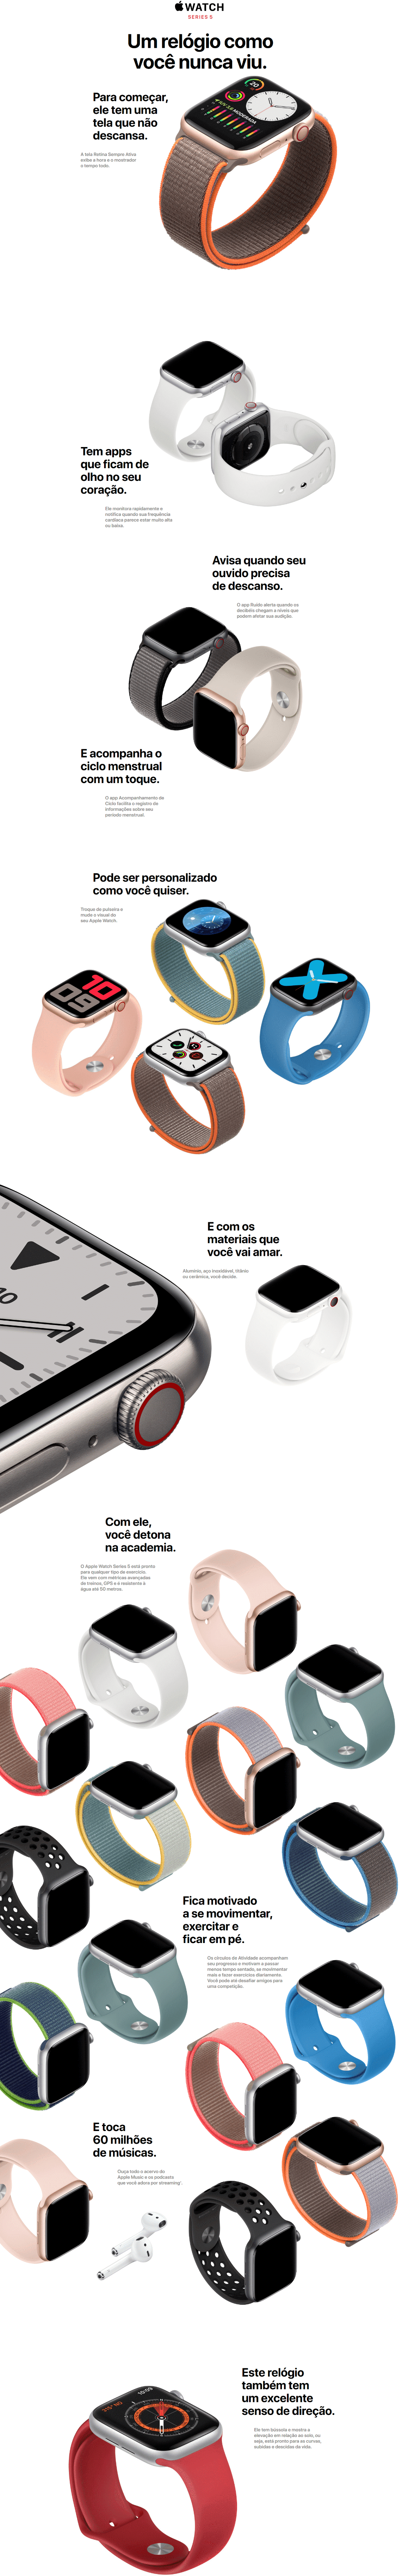 apple watch serie 5 novo 40 mm prata